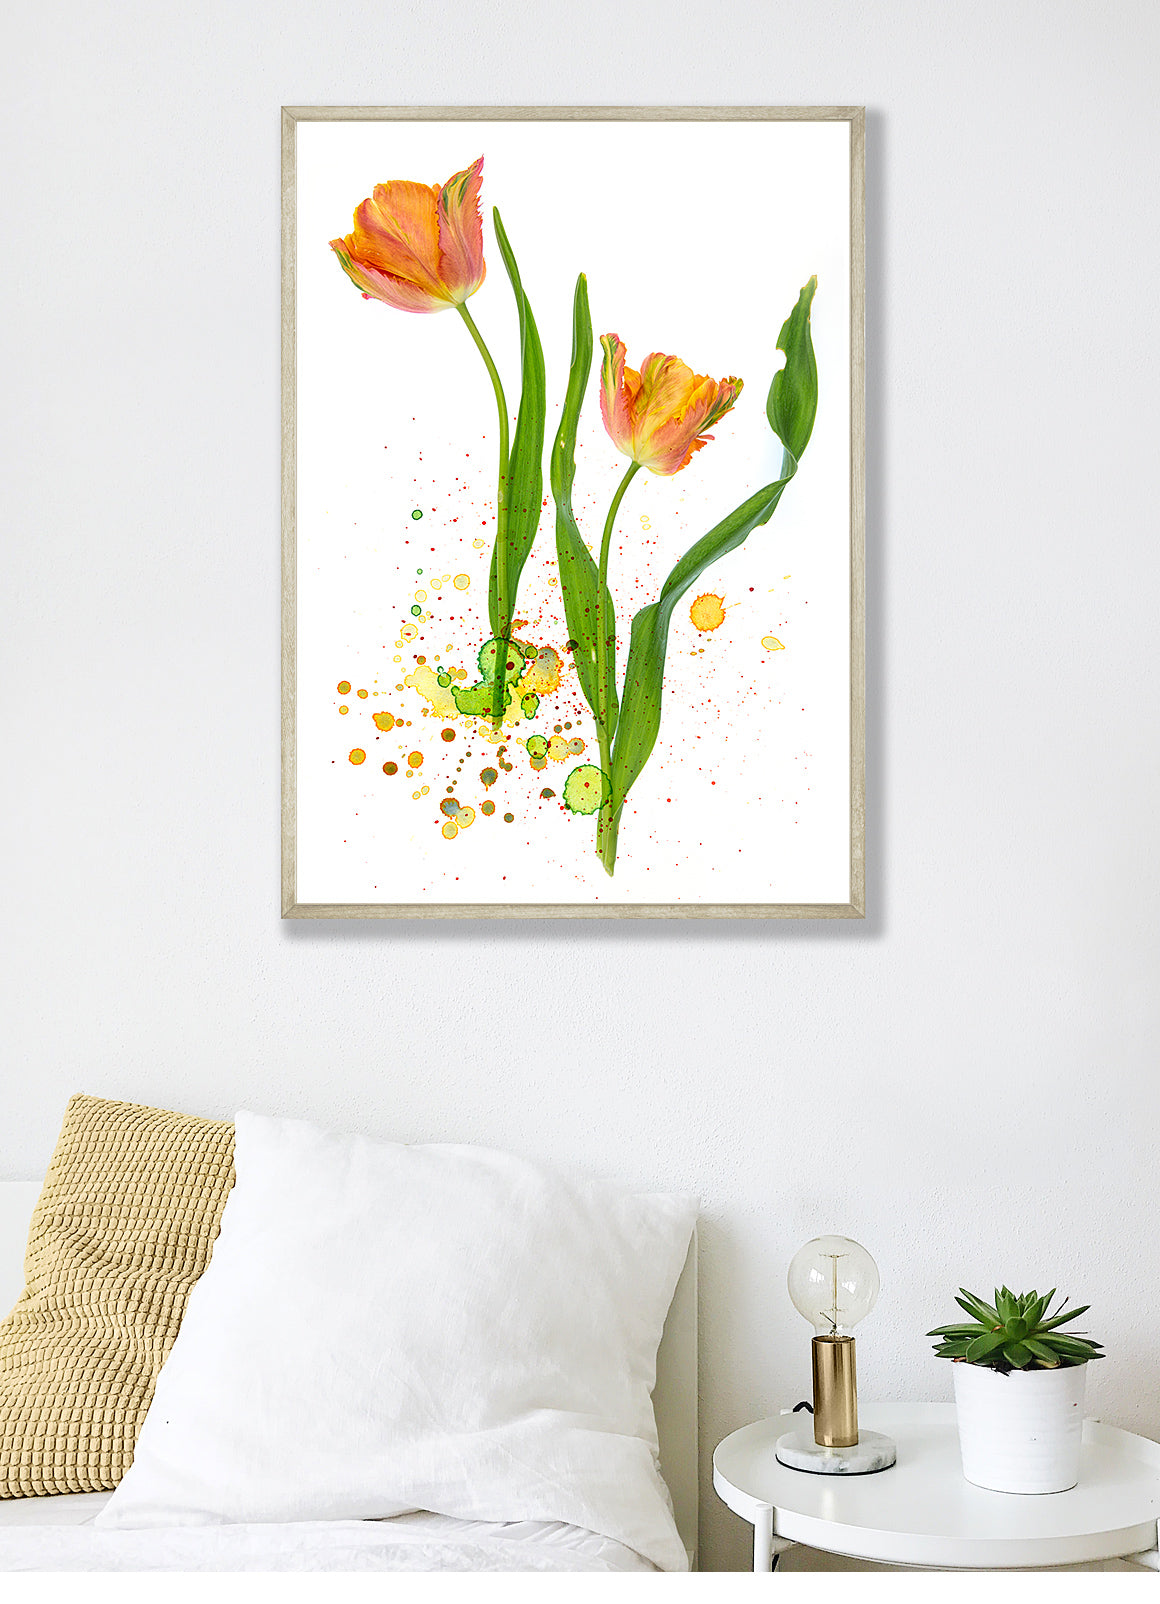 Photograph of tulips using watercolor spatter overlays from the Complete Inspirational Textures and Elements Collection.